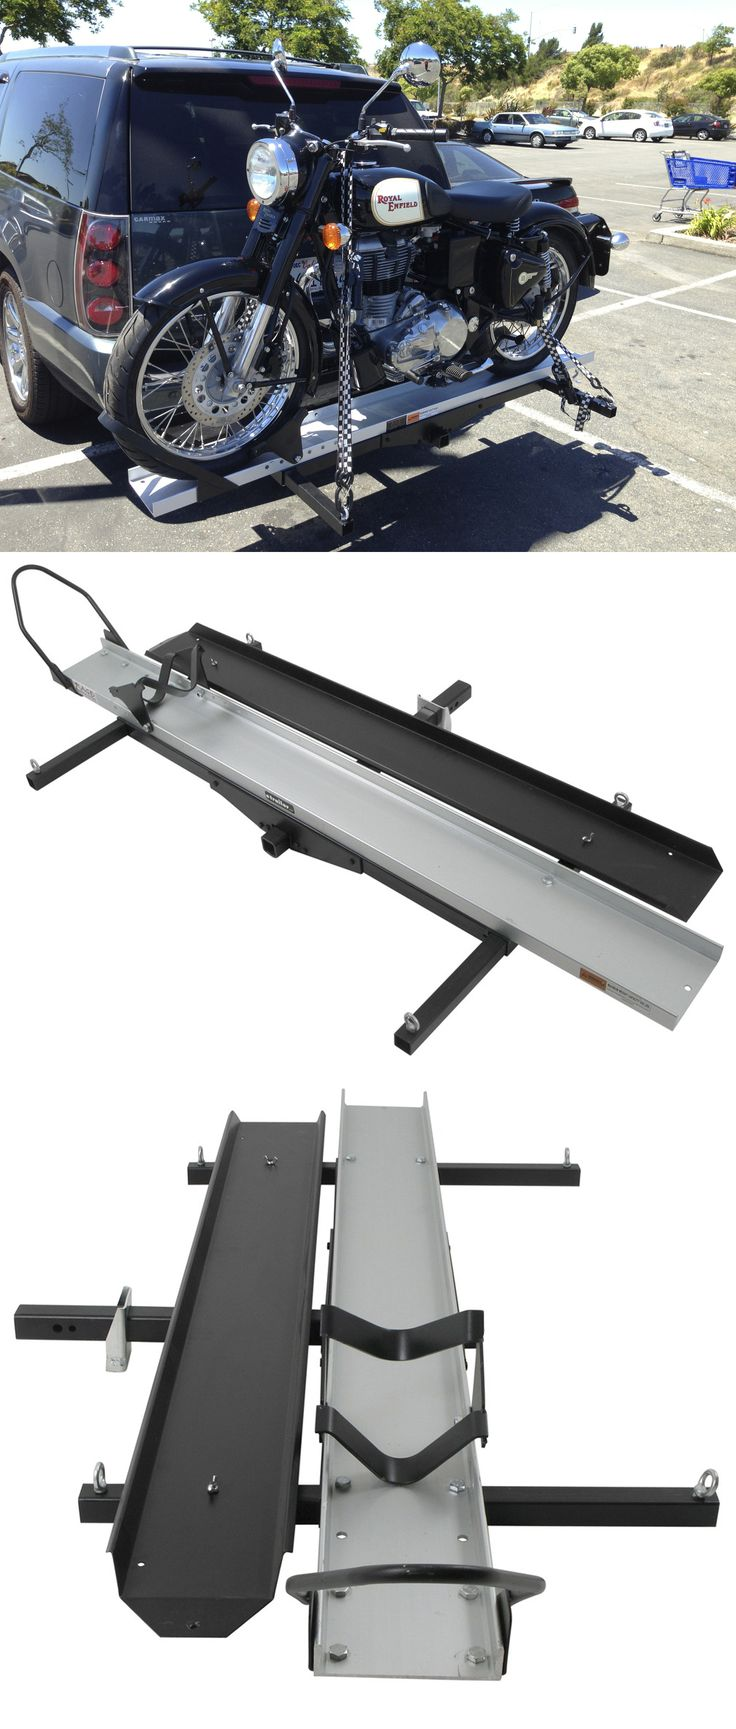 Rage PowerSports hitch cargo carrier lets you transport your motorcycle safely and efficiently. Durable, heavy-duty steel frame and includes extra long ramp for easy loading and unloading.